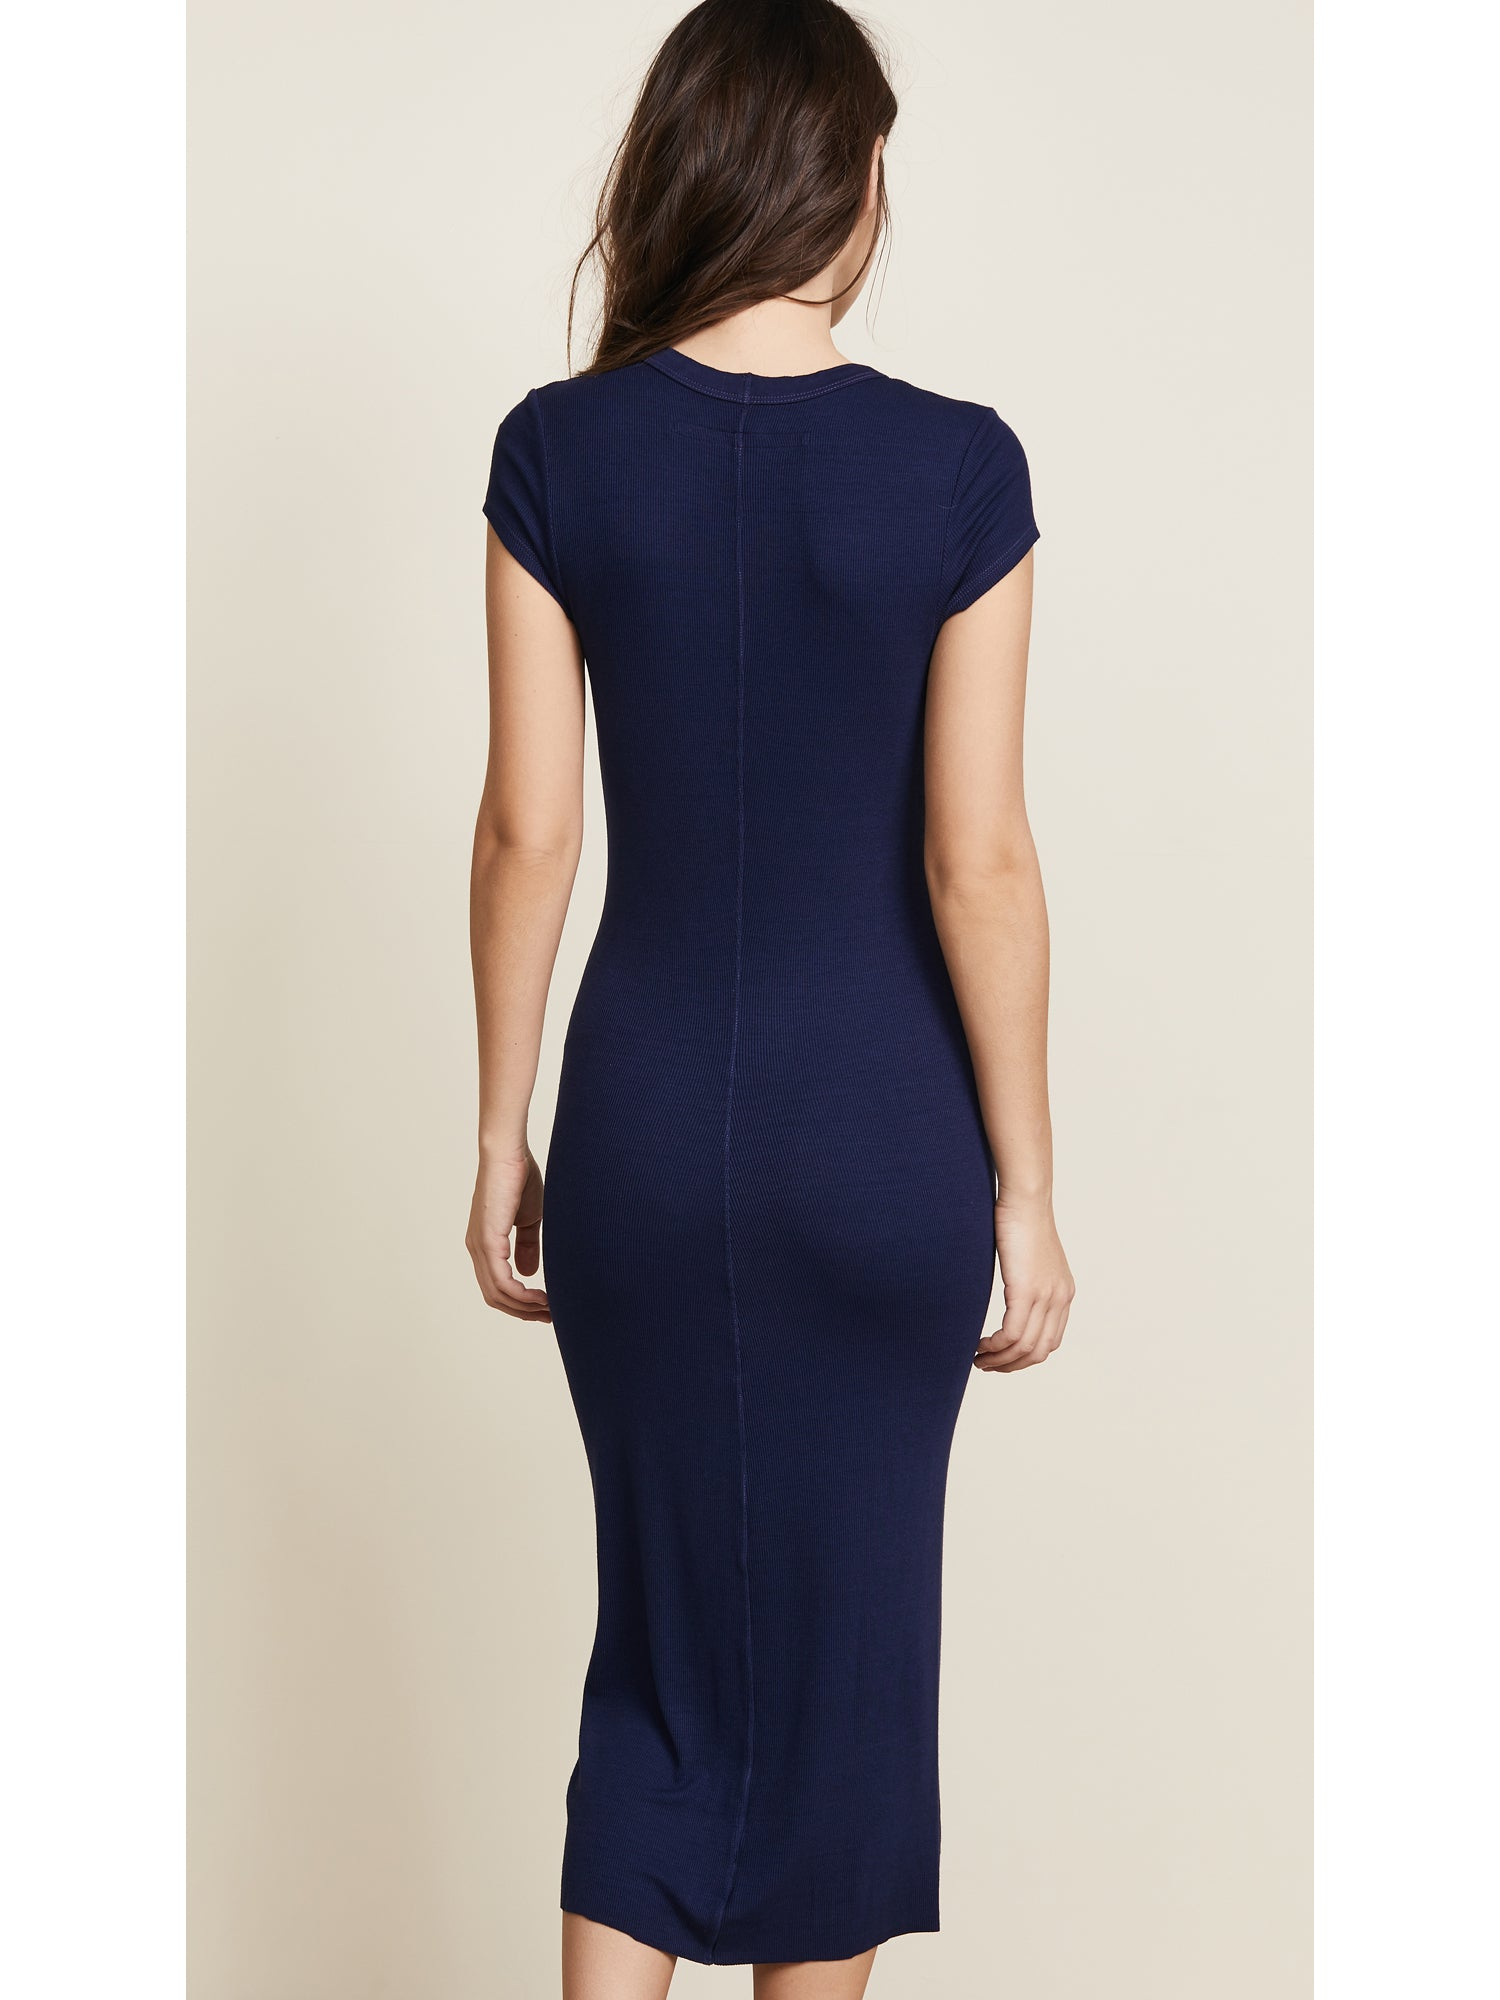 TILDEN | Enza Costa Rib Cap Sleeve Dress